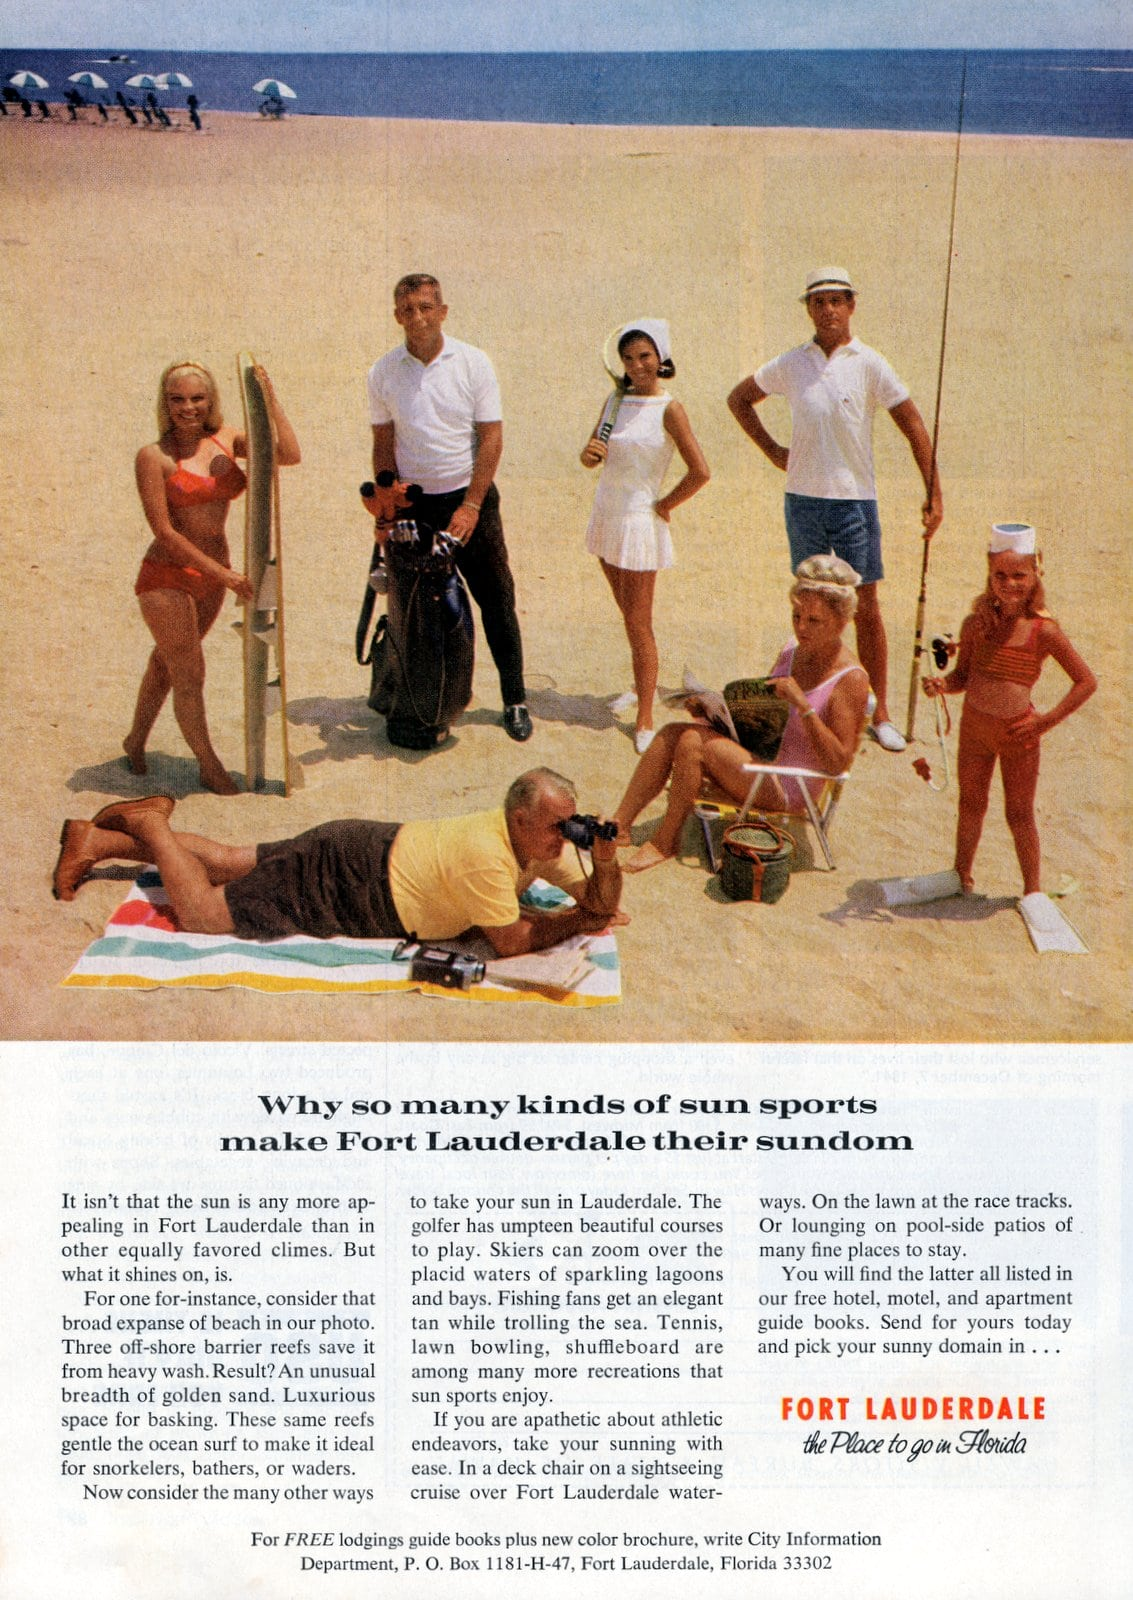 Fort Lauderdale vacations in 1967